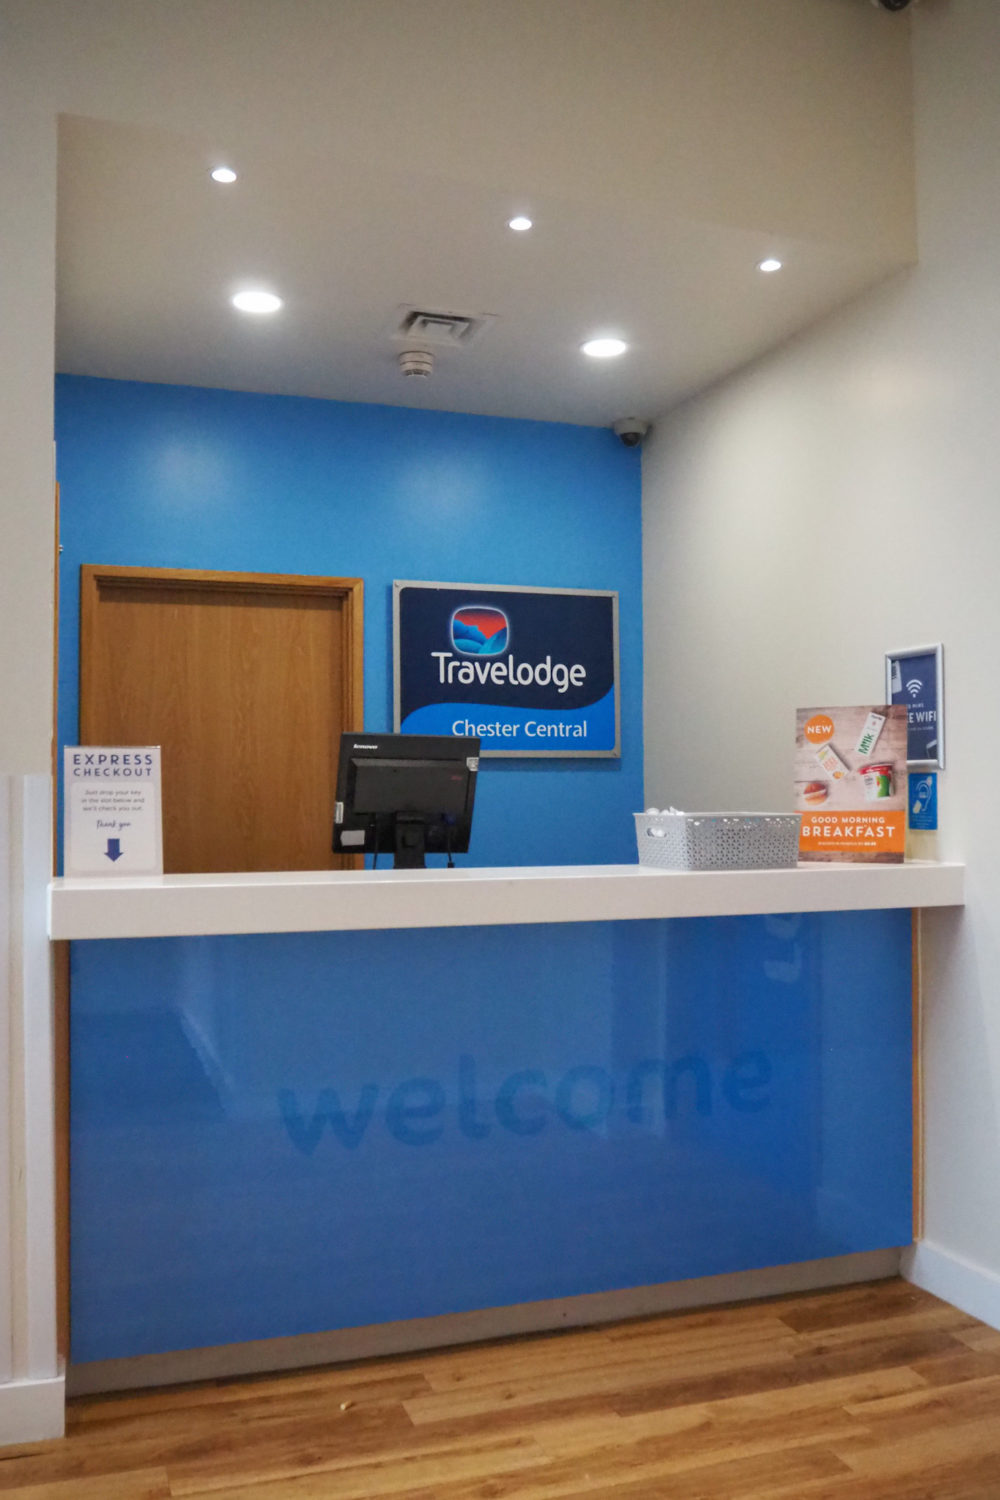 Travelodge Chester Central reception desk